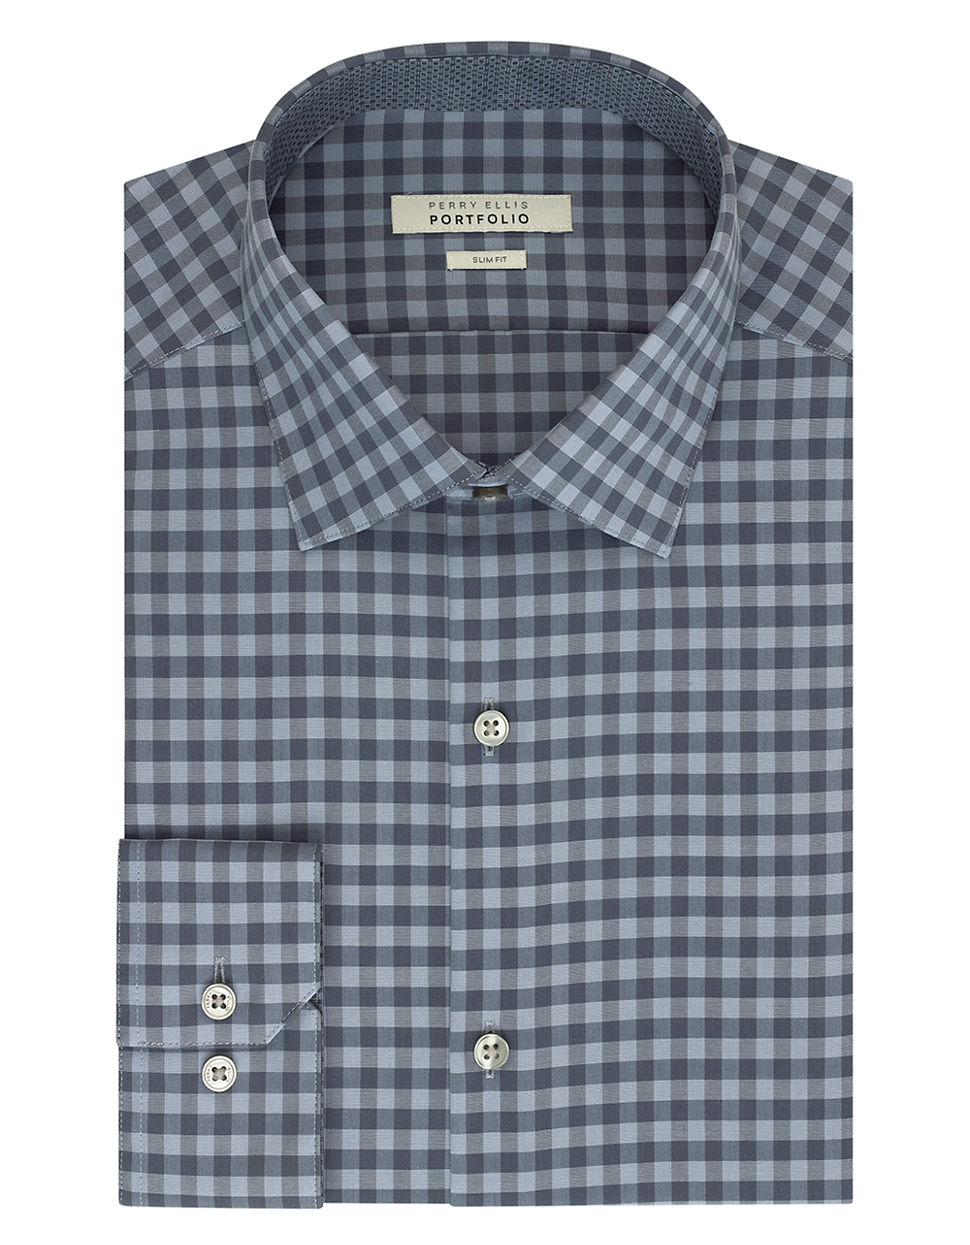 Lyst perry ellis slim fit gingham check dress shirt in for Slim fit gingham check shirt